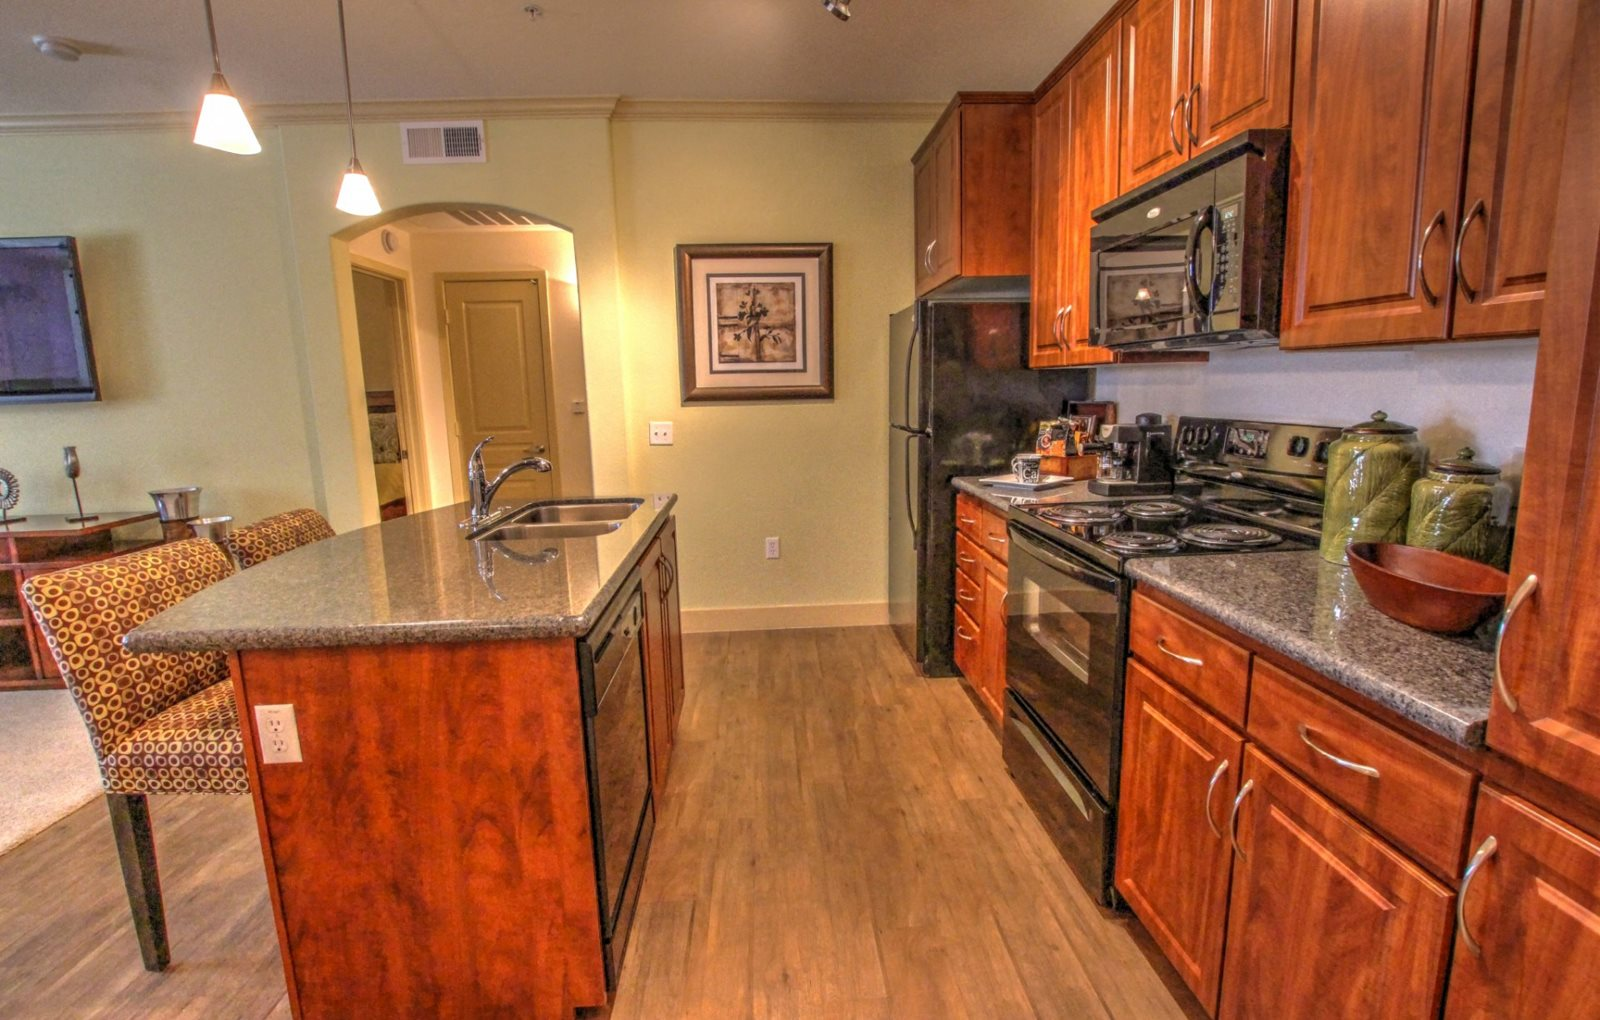 Kitchen at Trails at San Tan Apartments in Gilbert, AZ